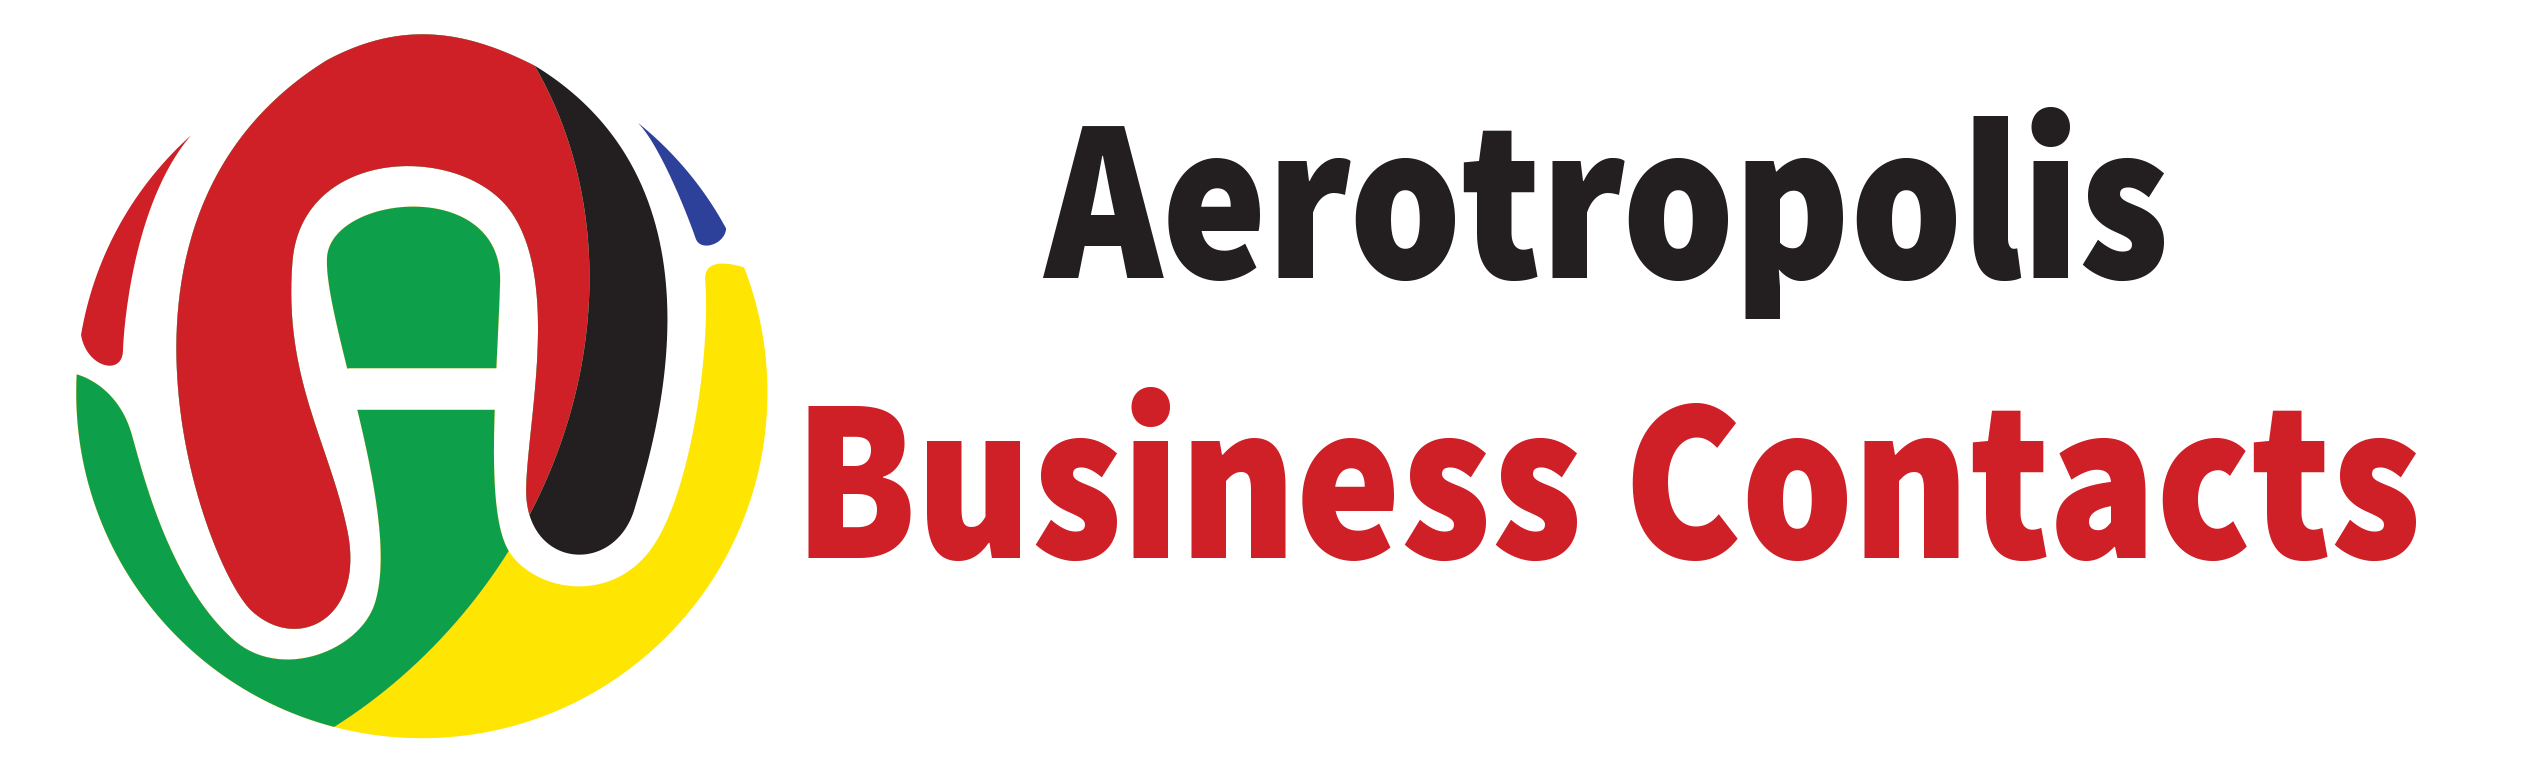 Aerotropolis Business Contacts Logo Transparent